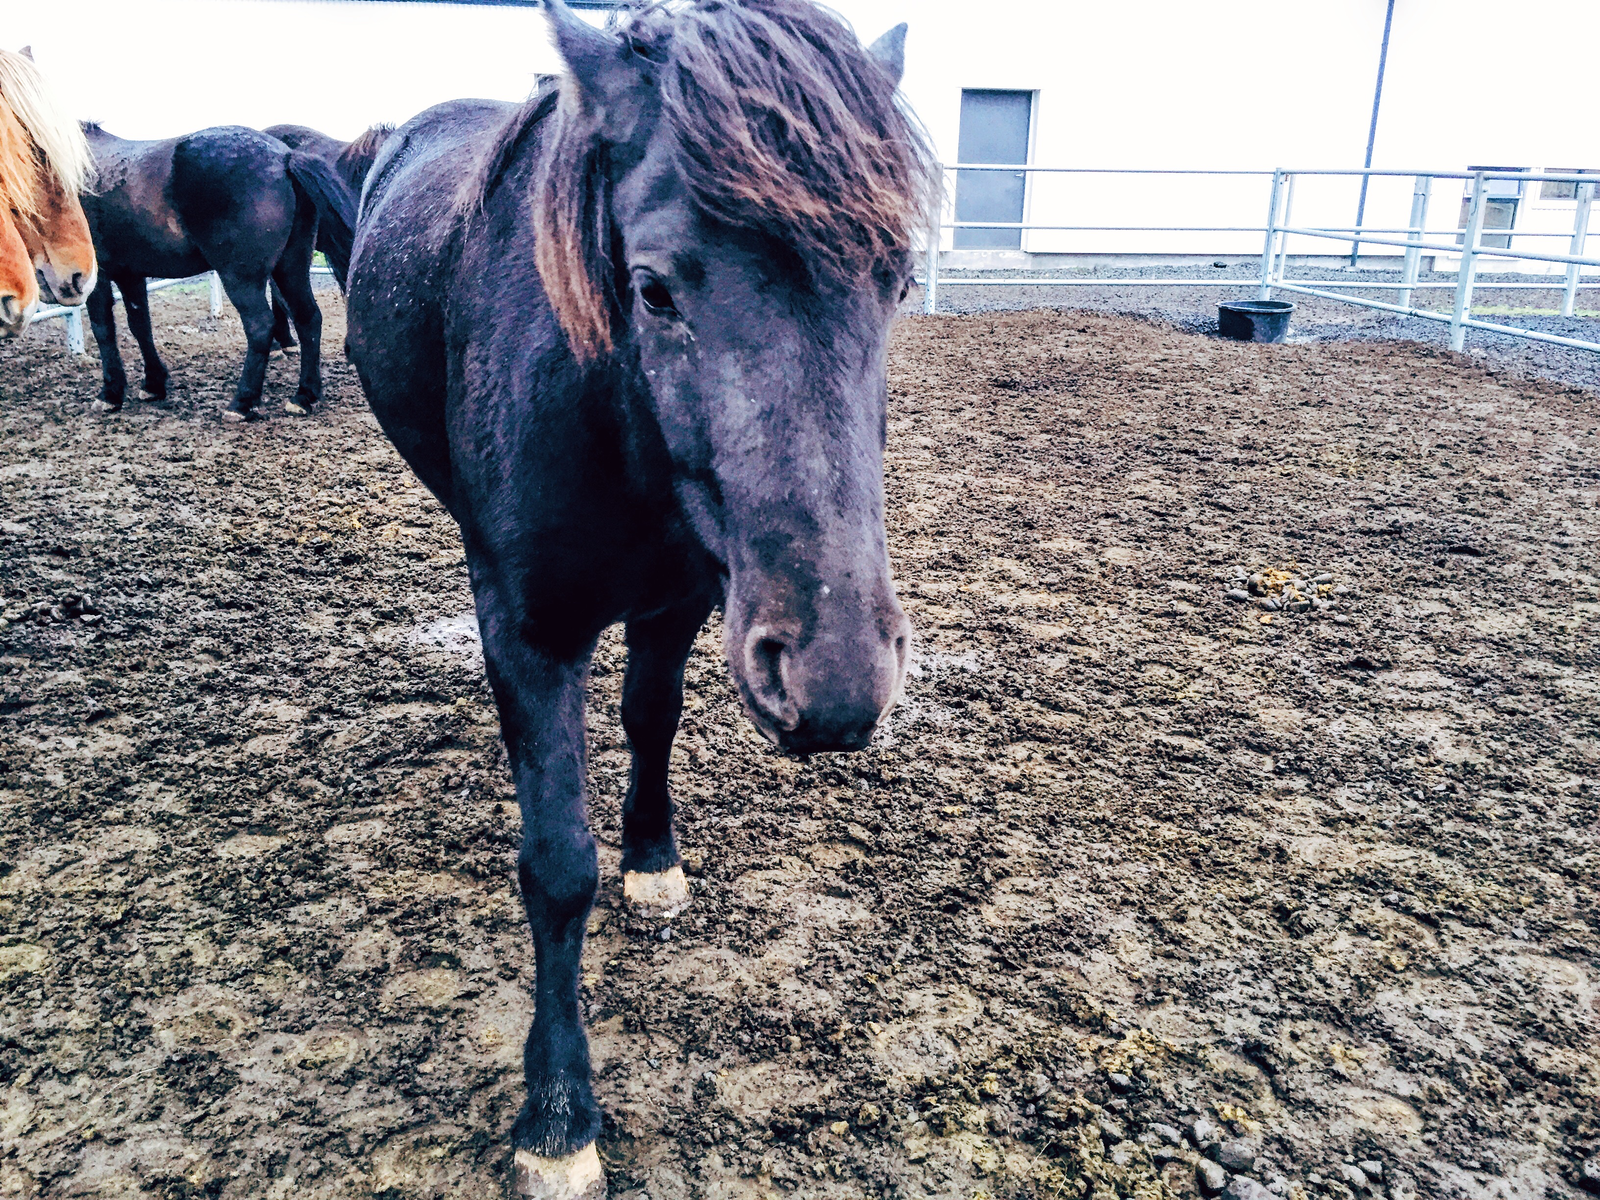 Fakasel Horse Park icelandic horses - things to do with only 48 hours in Iceland